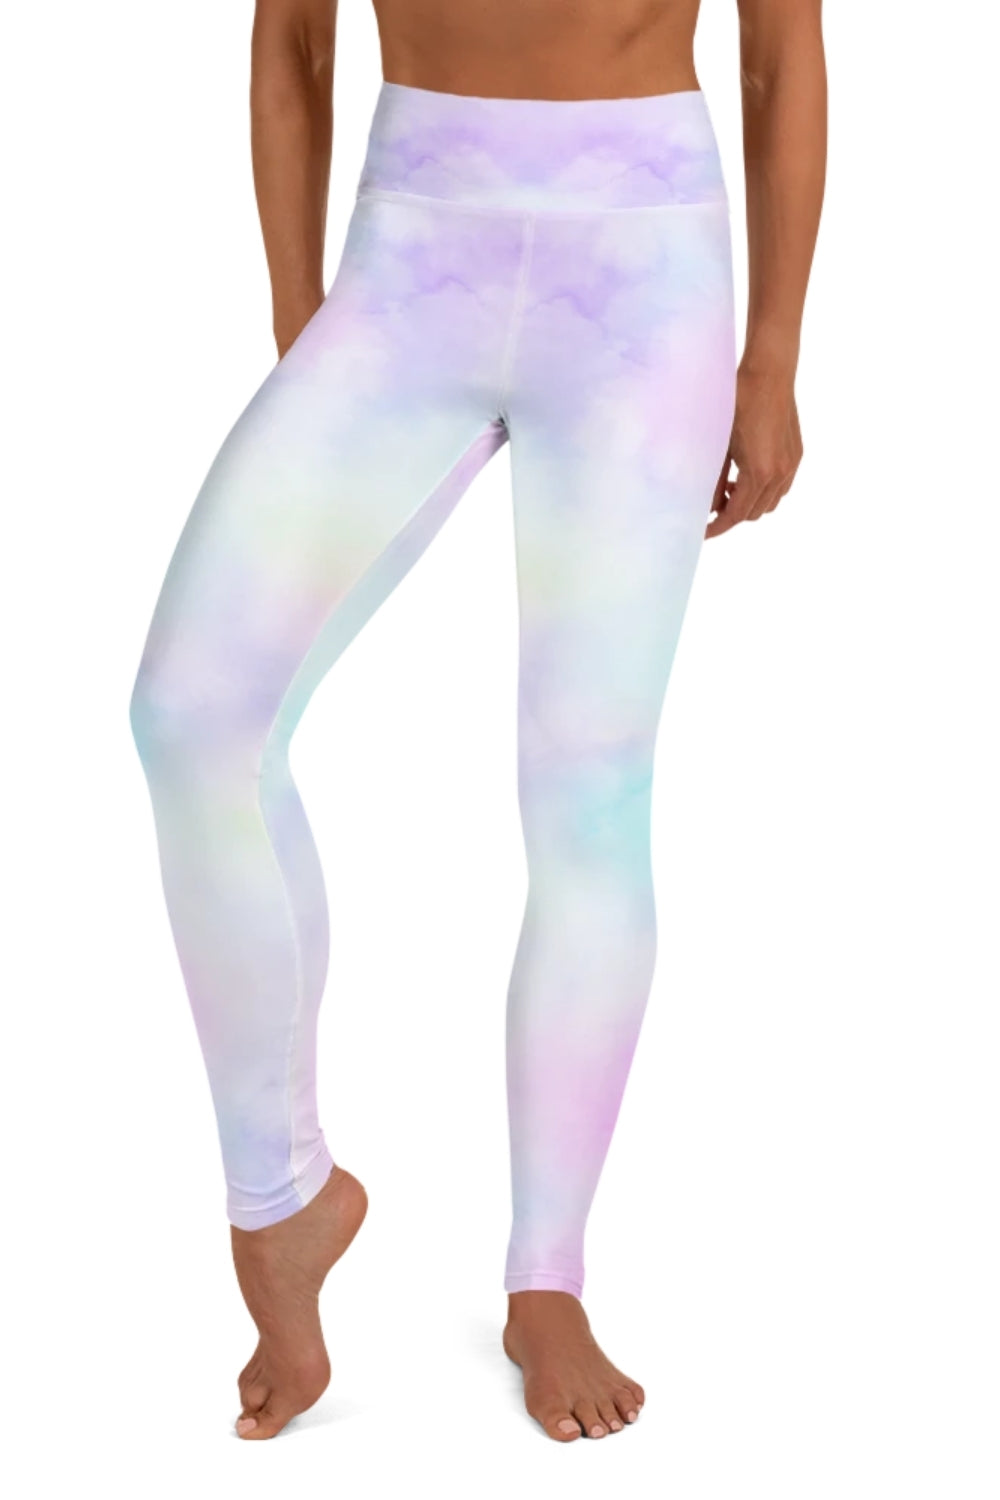 Paddle Pop Yoga Leggings